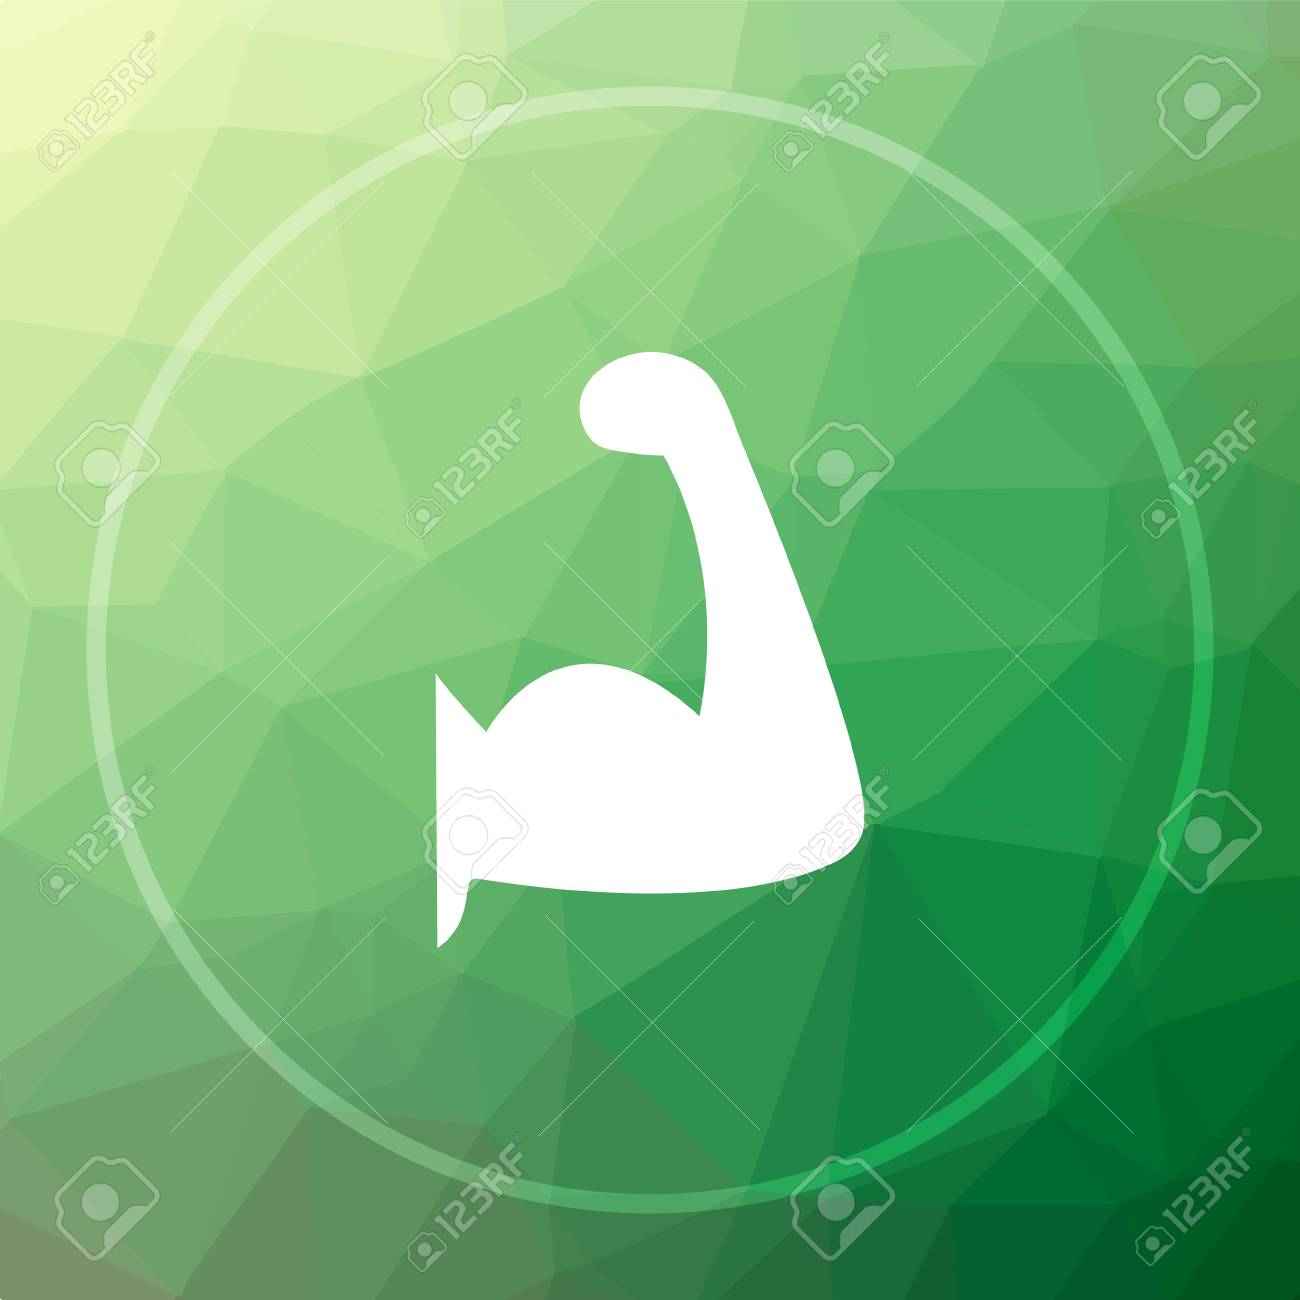 Muscle icon  Muscle website button on green low poly background